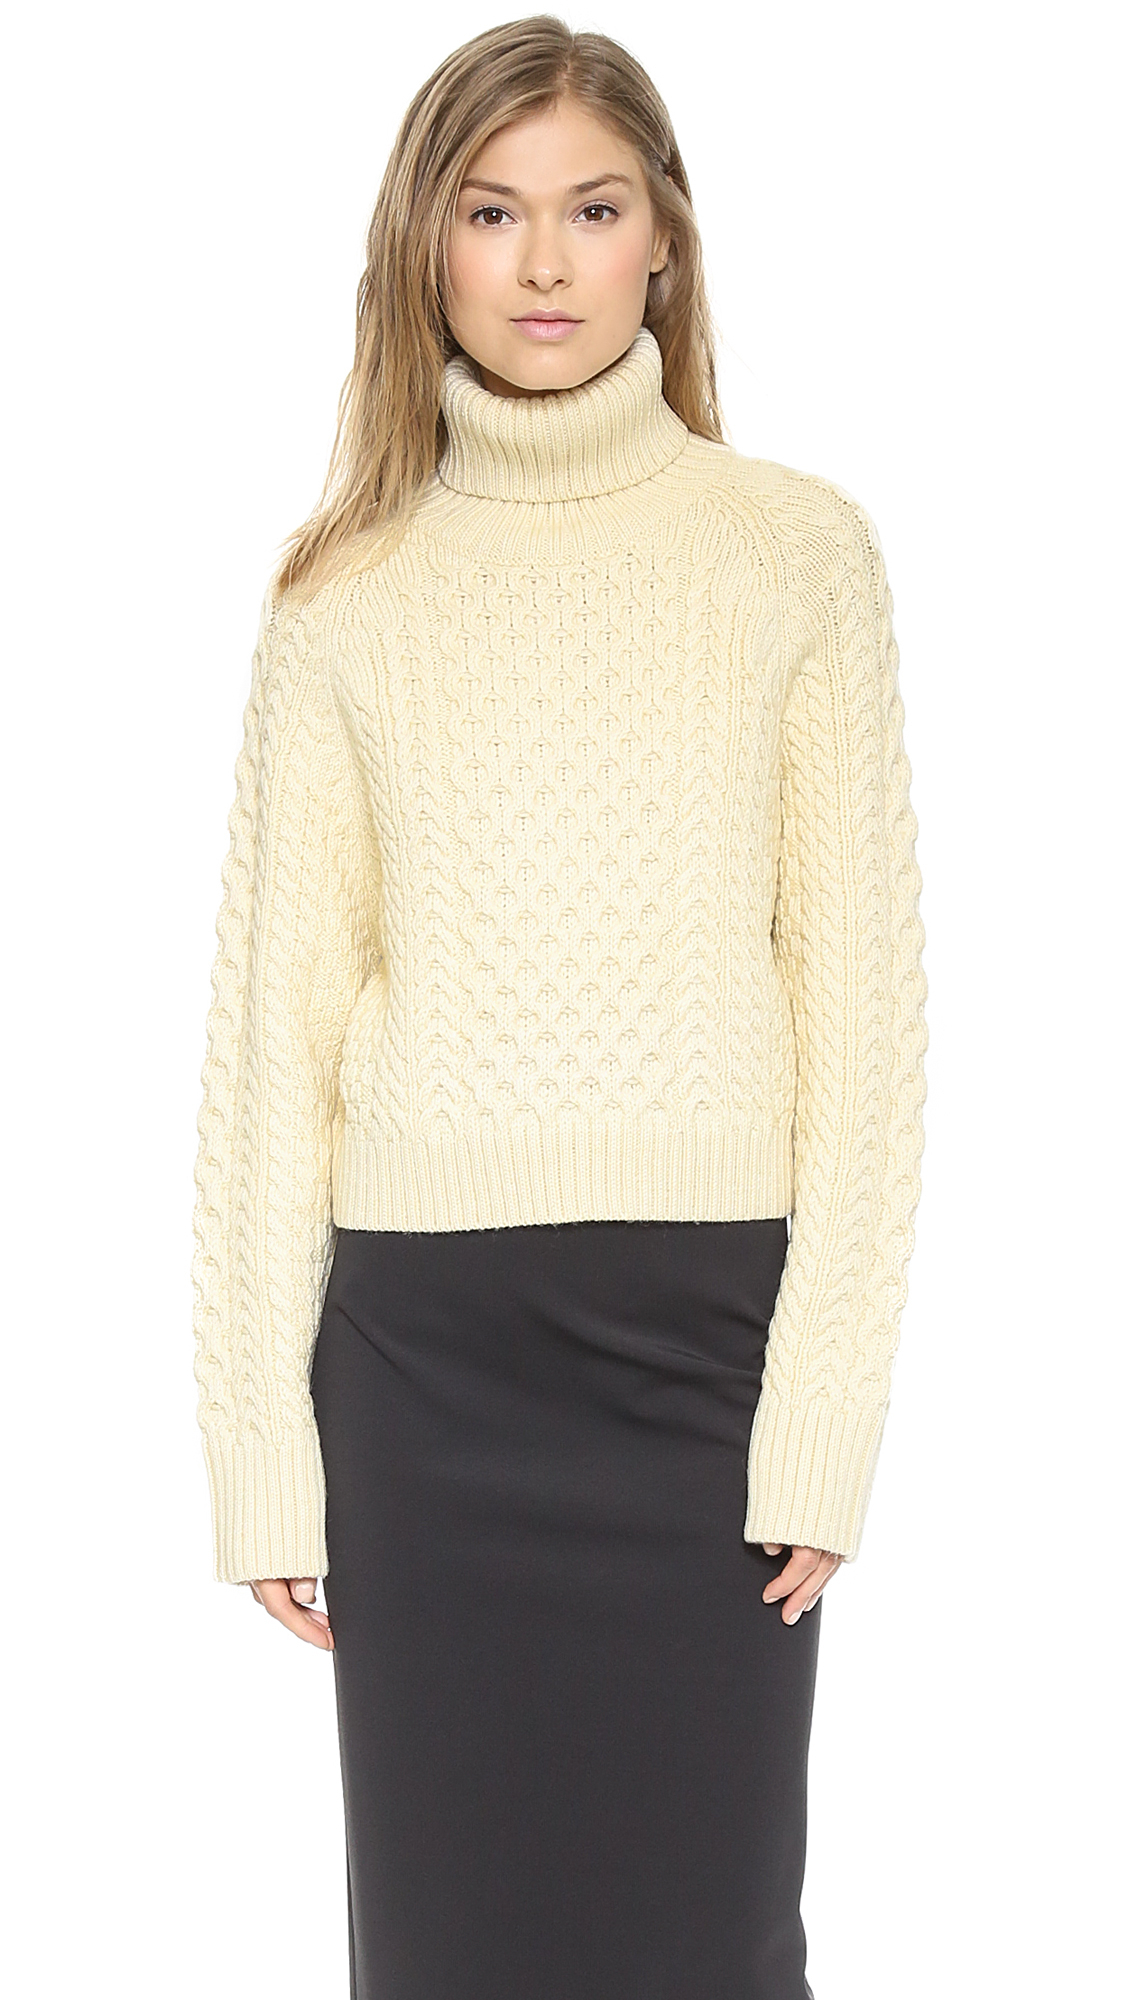 Apiece apart Carrine Cropped Turtleneck - Cream in Natural | Lyst